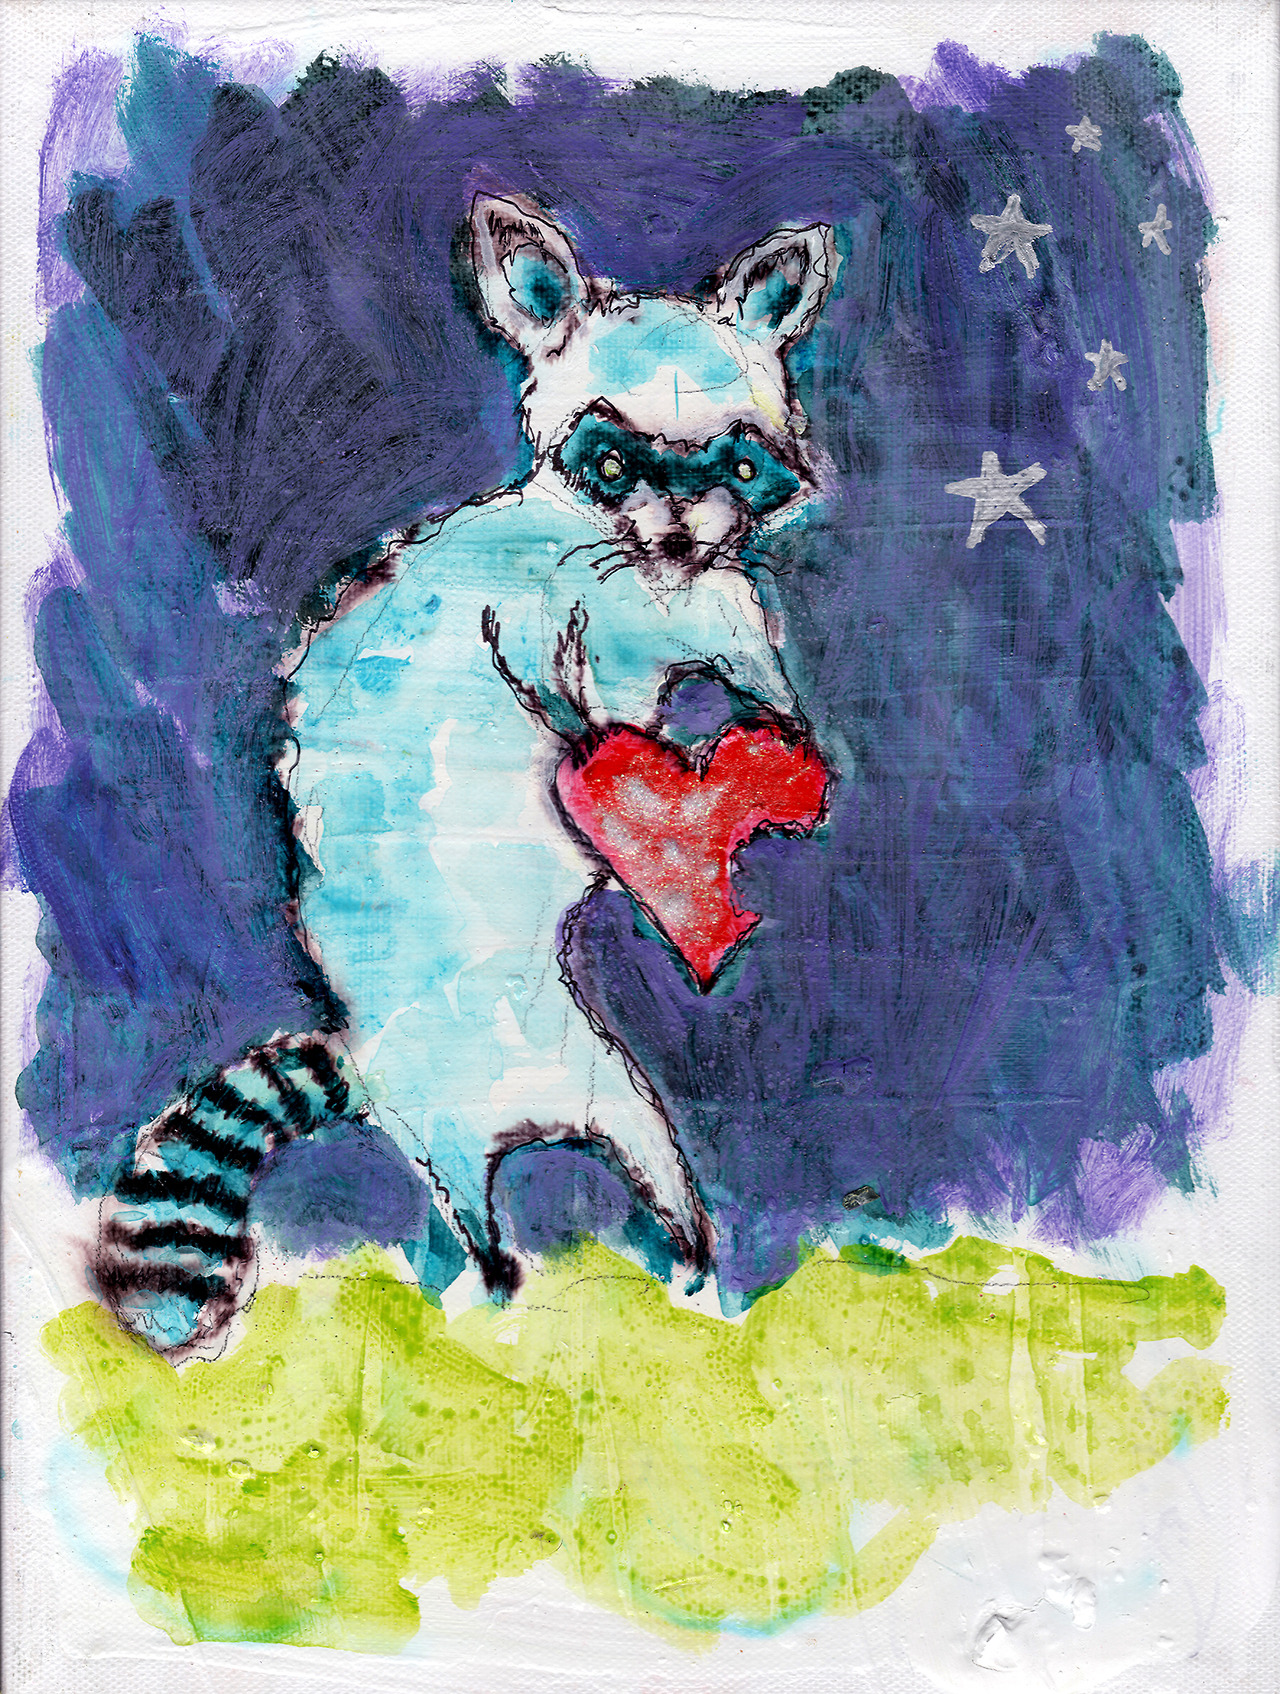 11/10/13 -  The Garbage Eater.    Raccoons will eat anything.   Kickstarter - http://www.kickstarter.com/projects/taylorwinder/the-art-book-of-the-year